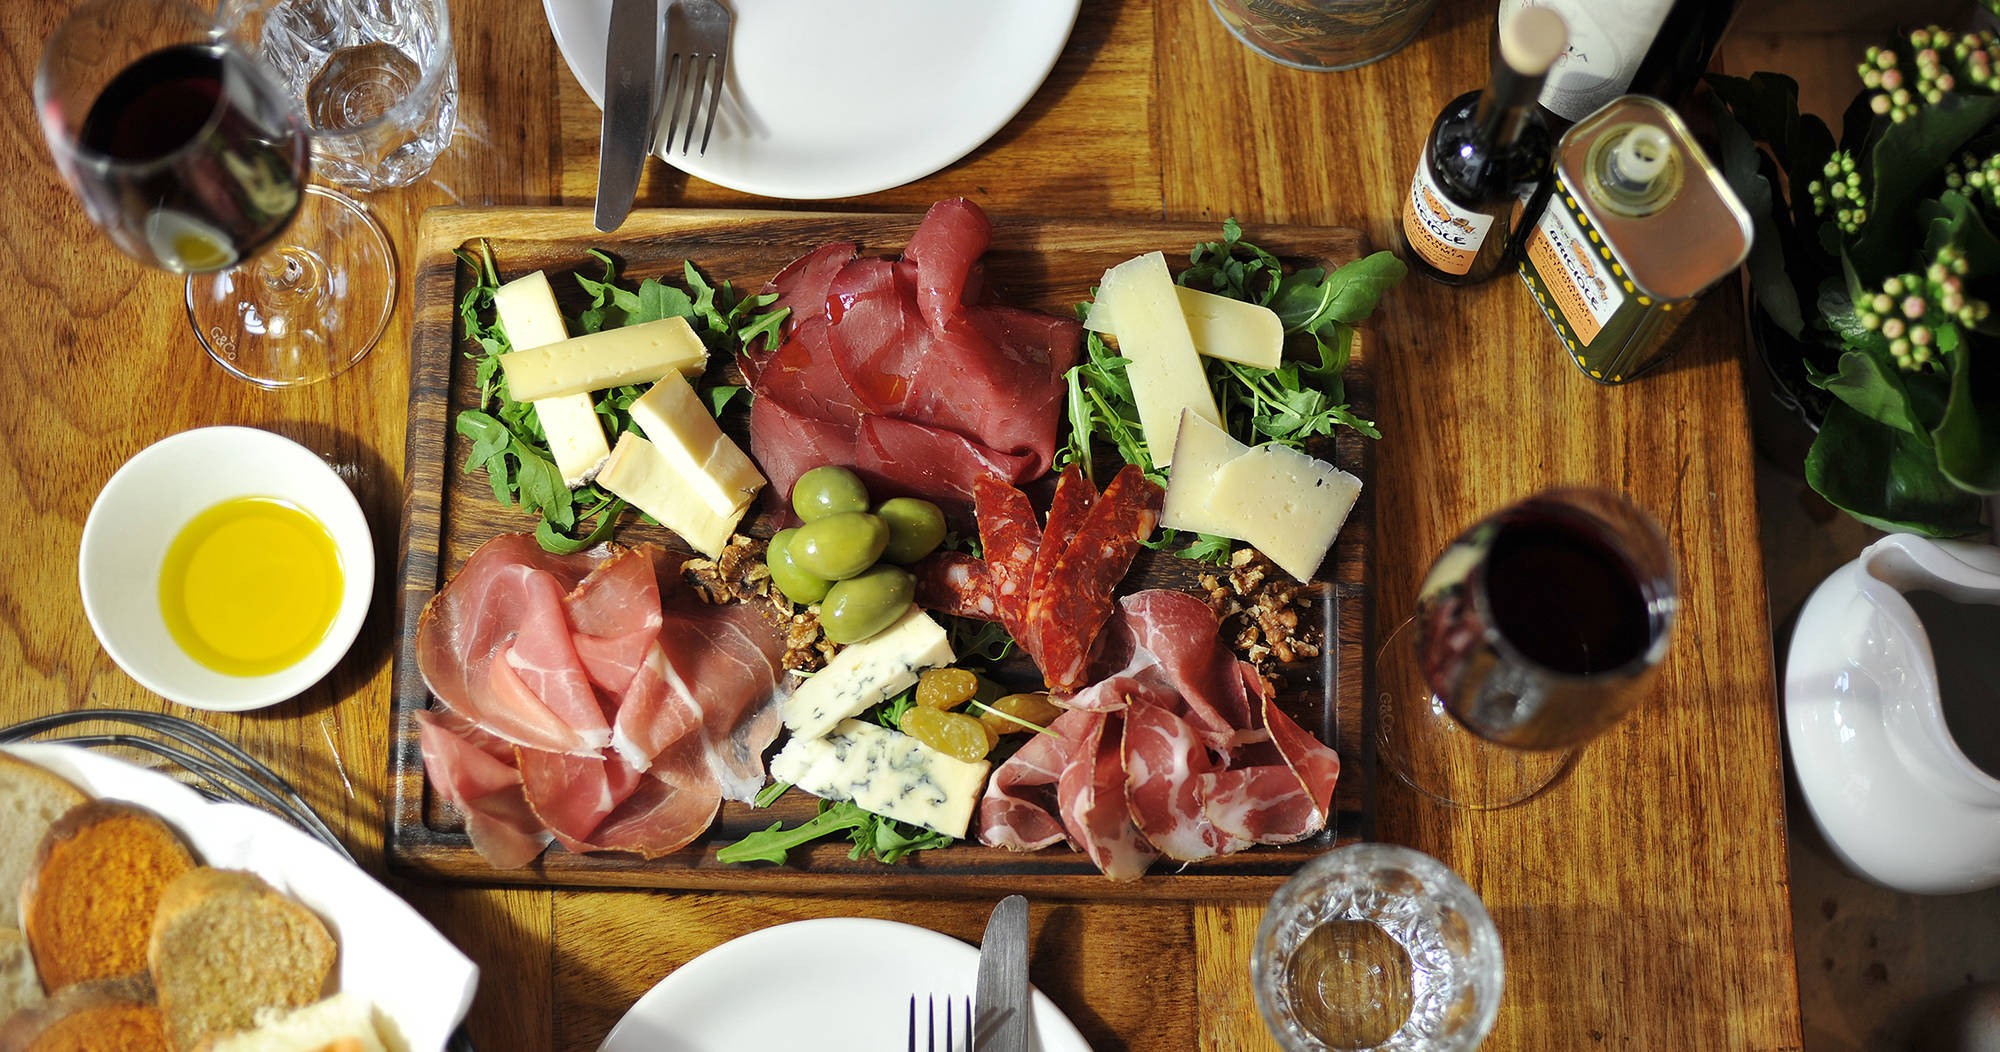 Rustic Italian Deli Dining Selection in Marylebone, London